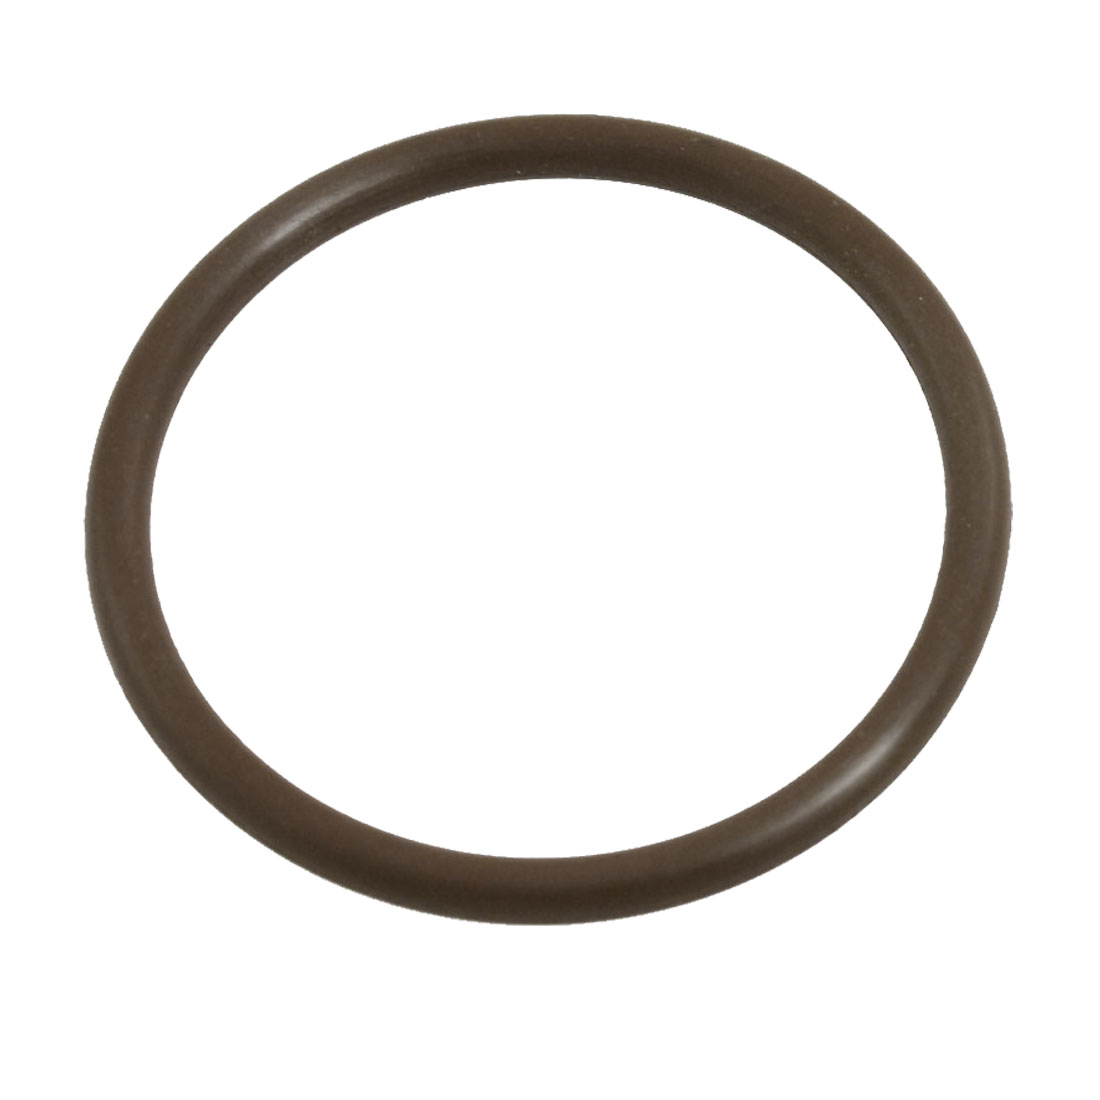 Coffee Color Fluorine Rubber O Ring Oil Seal Gaskets 41mm x 3mm